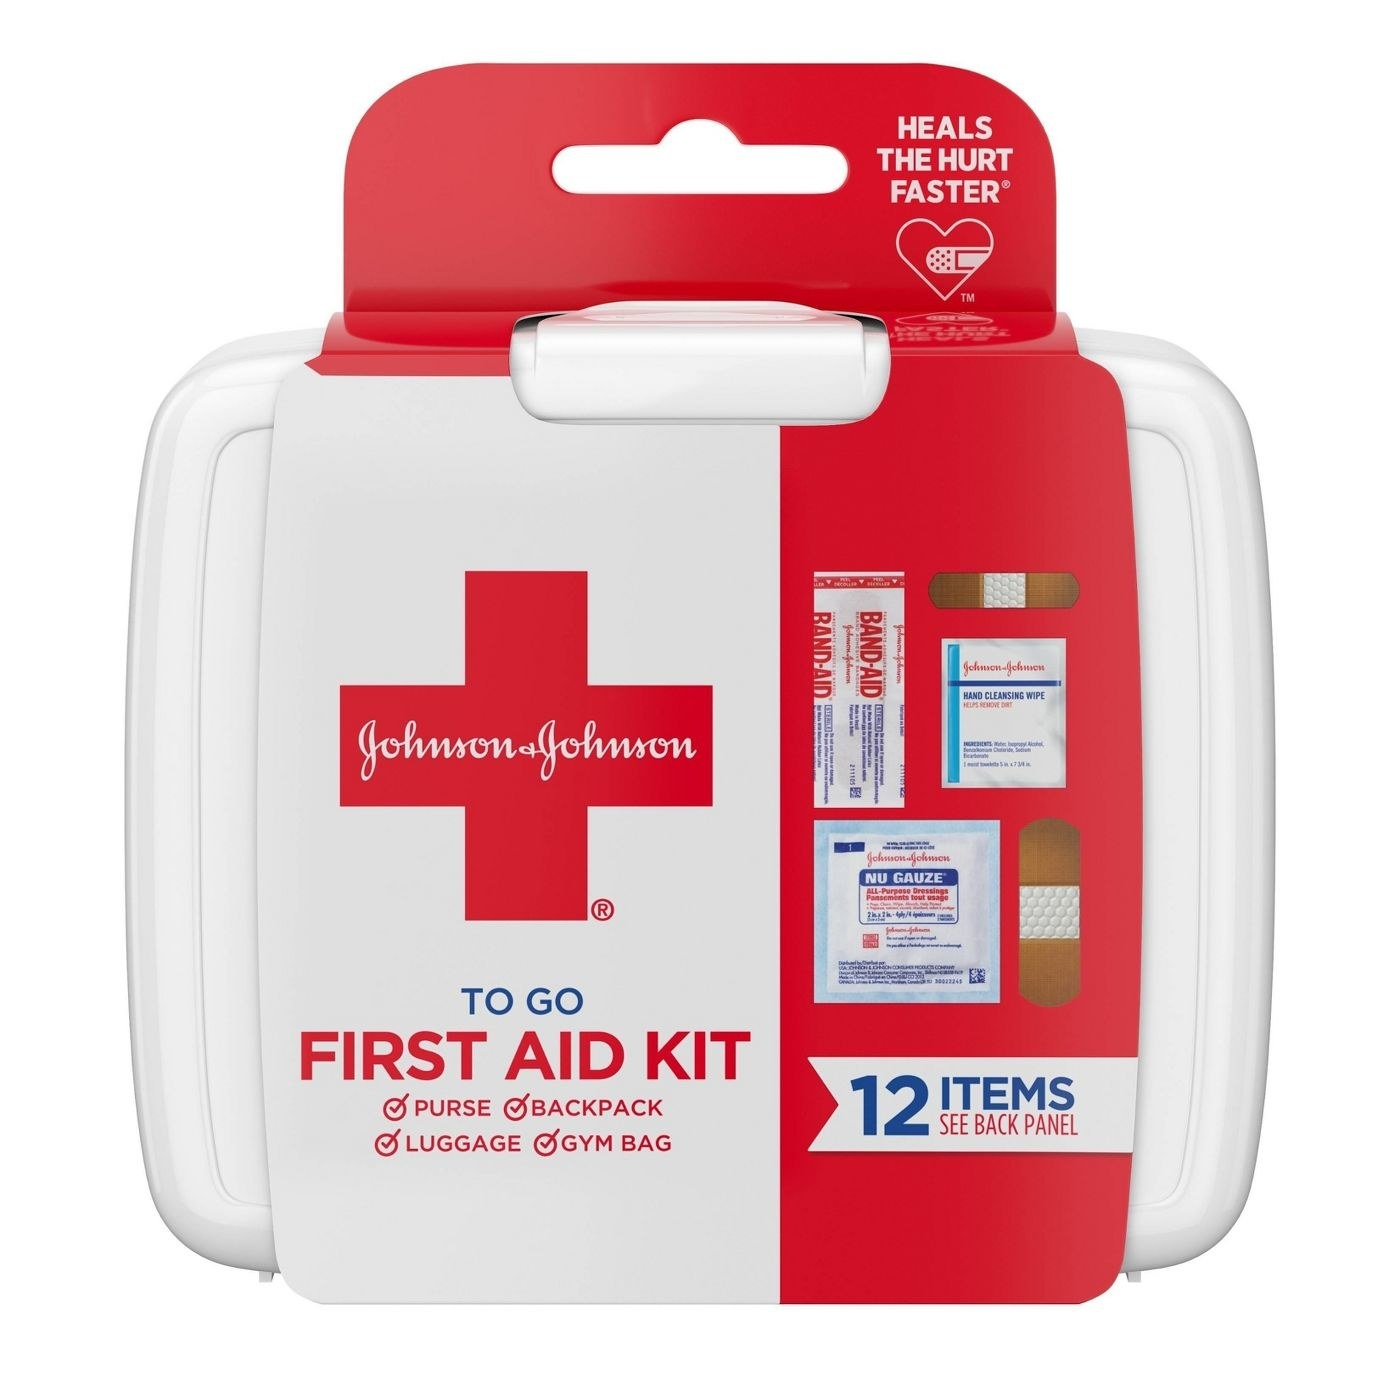 the first-aid kit